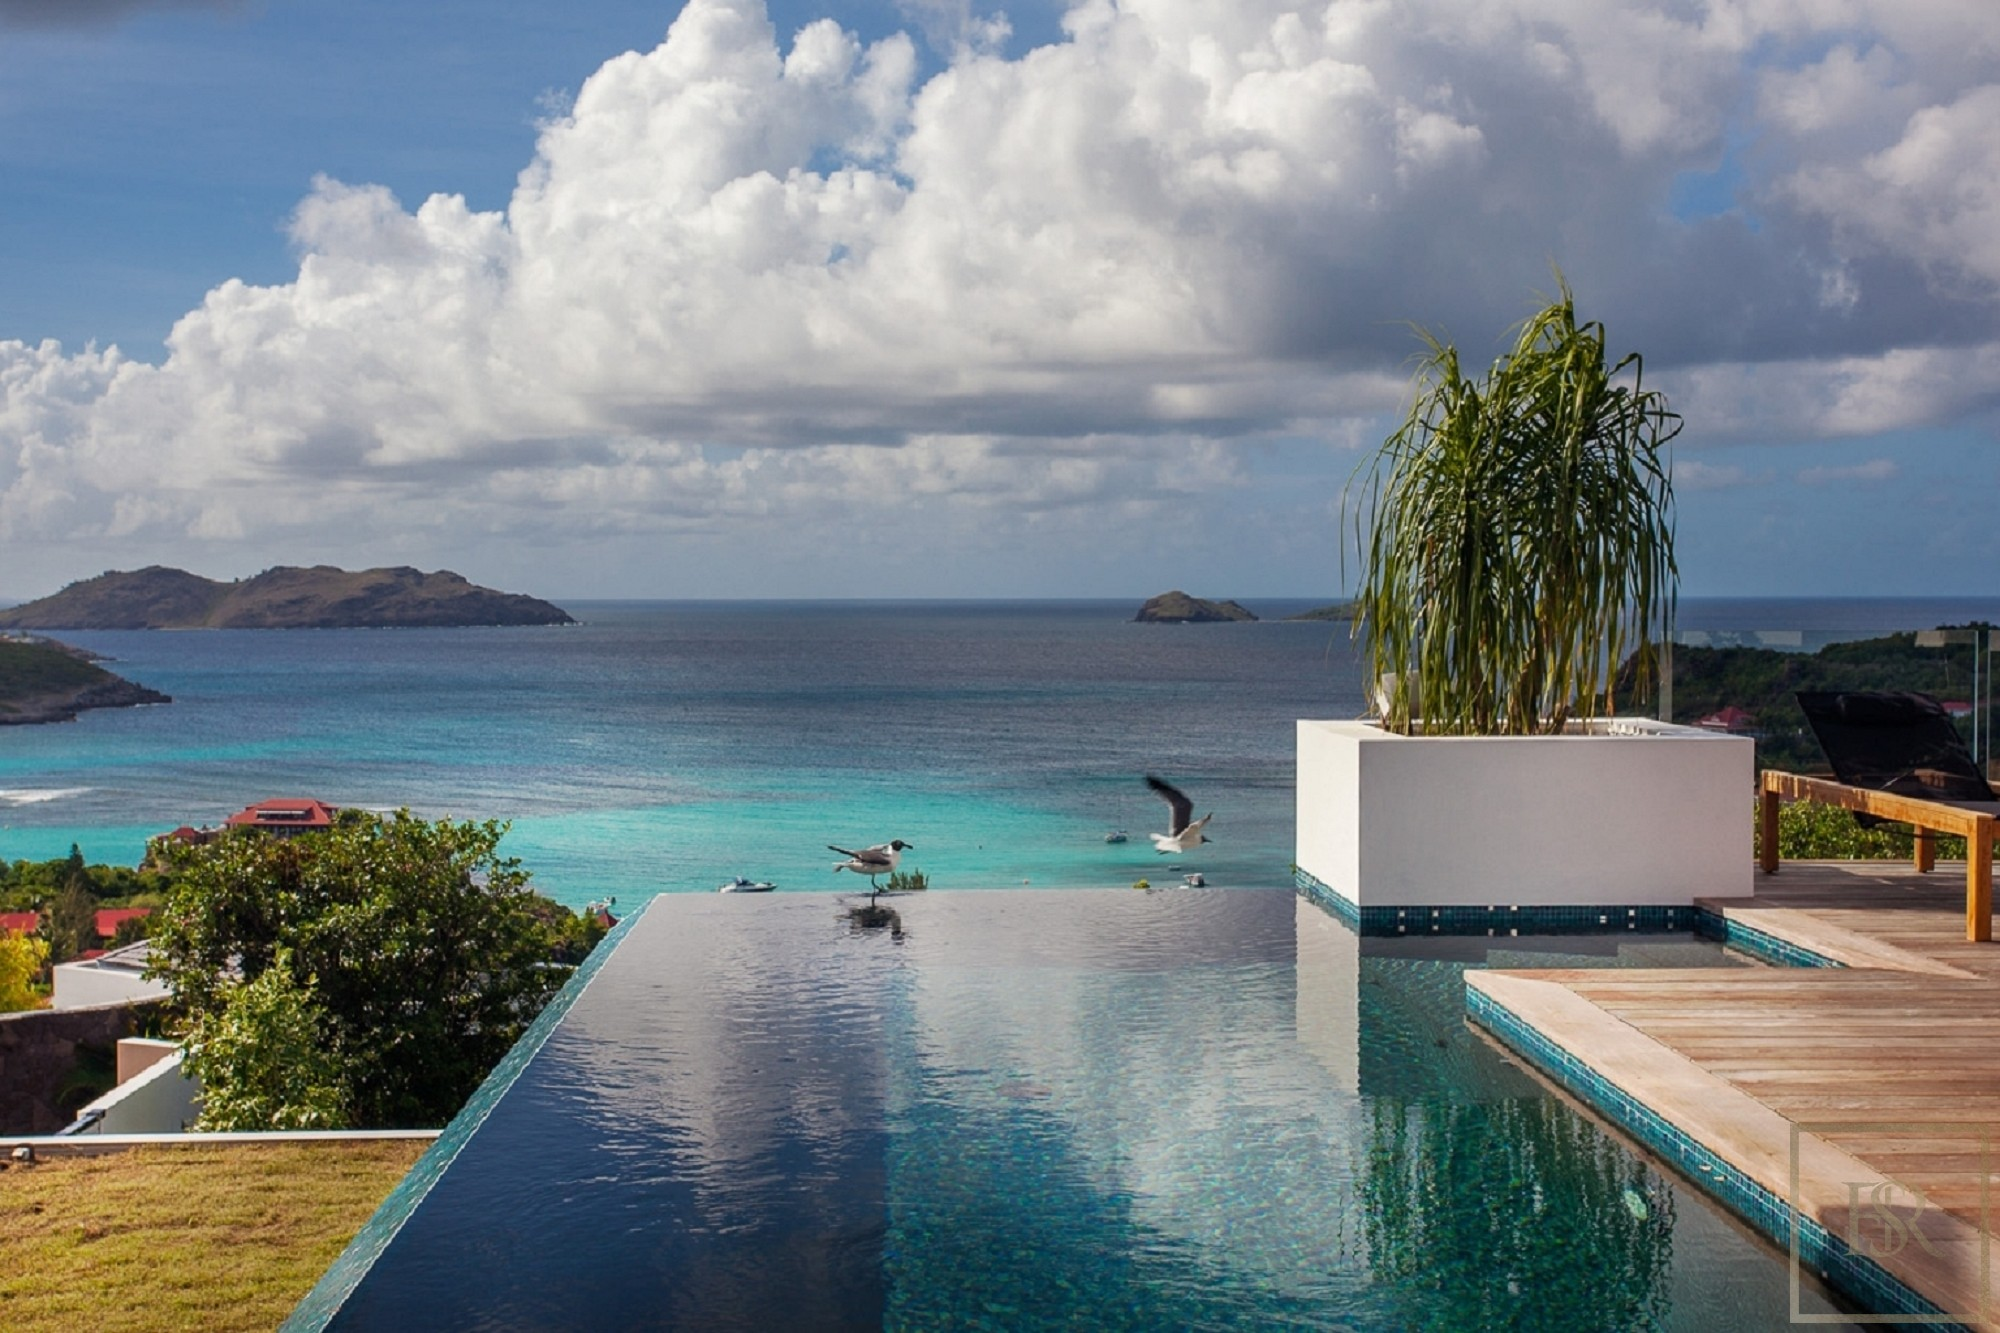 For super rich ultra luxury real estate properties homes, most expensive houses, rent unique penthouse apartment and ultimate villa in St Barth - Saint Jean St Barth St. Barthélemy for rent holiday